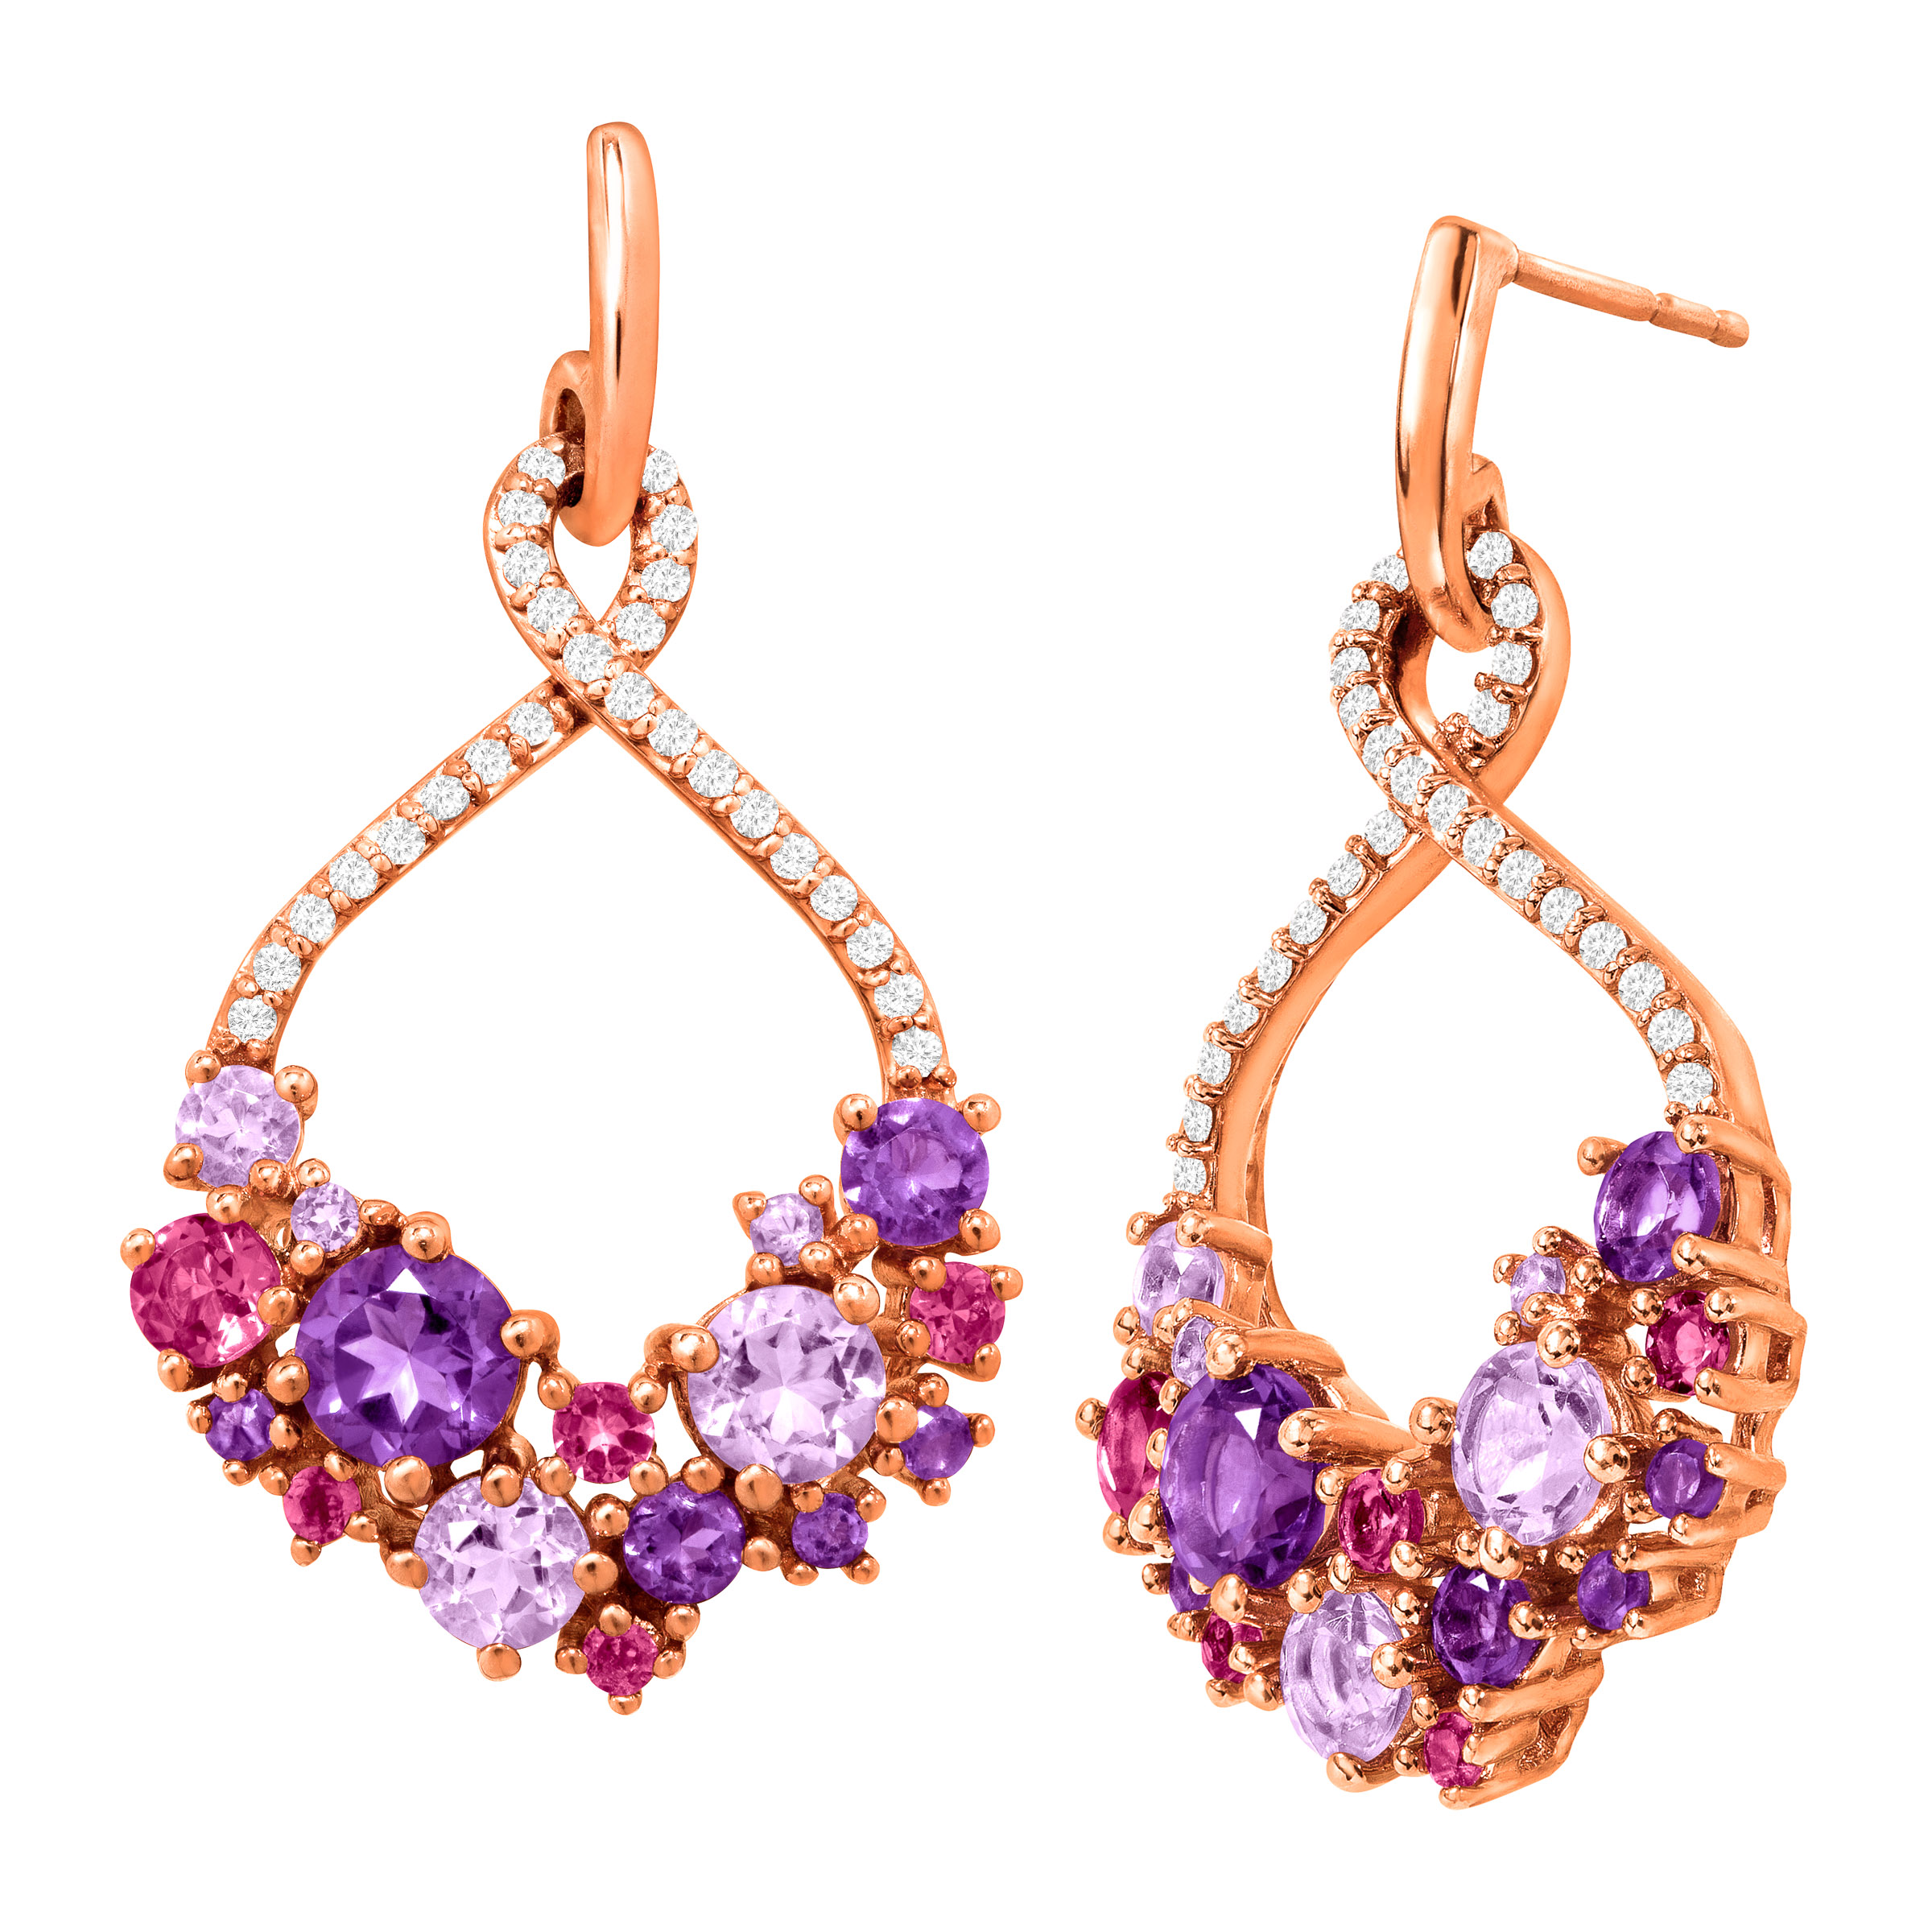 2 7 8 ct Natural Amethyst & Pink Tourmaline Drop Earrings in 18kt Rose Gold-Plated Sterling Silver by Richline Group